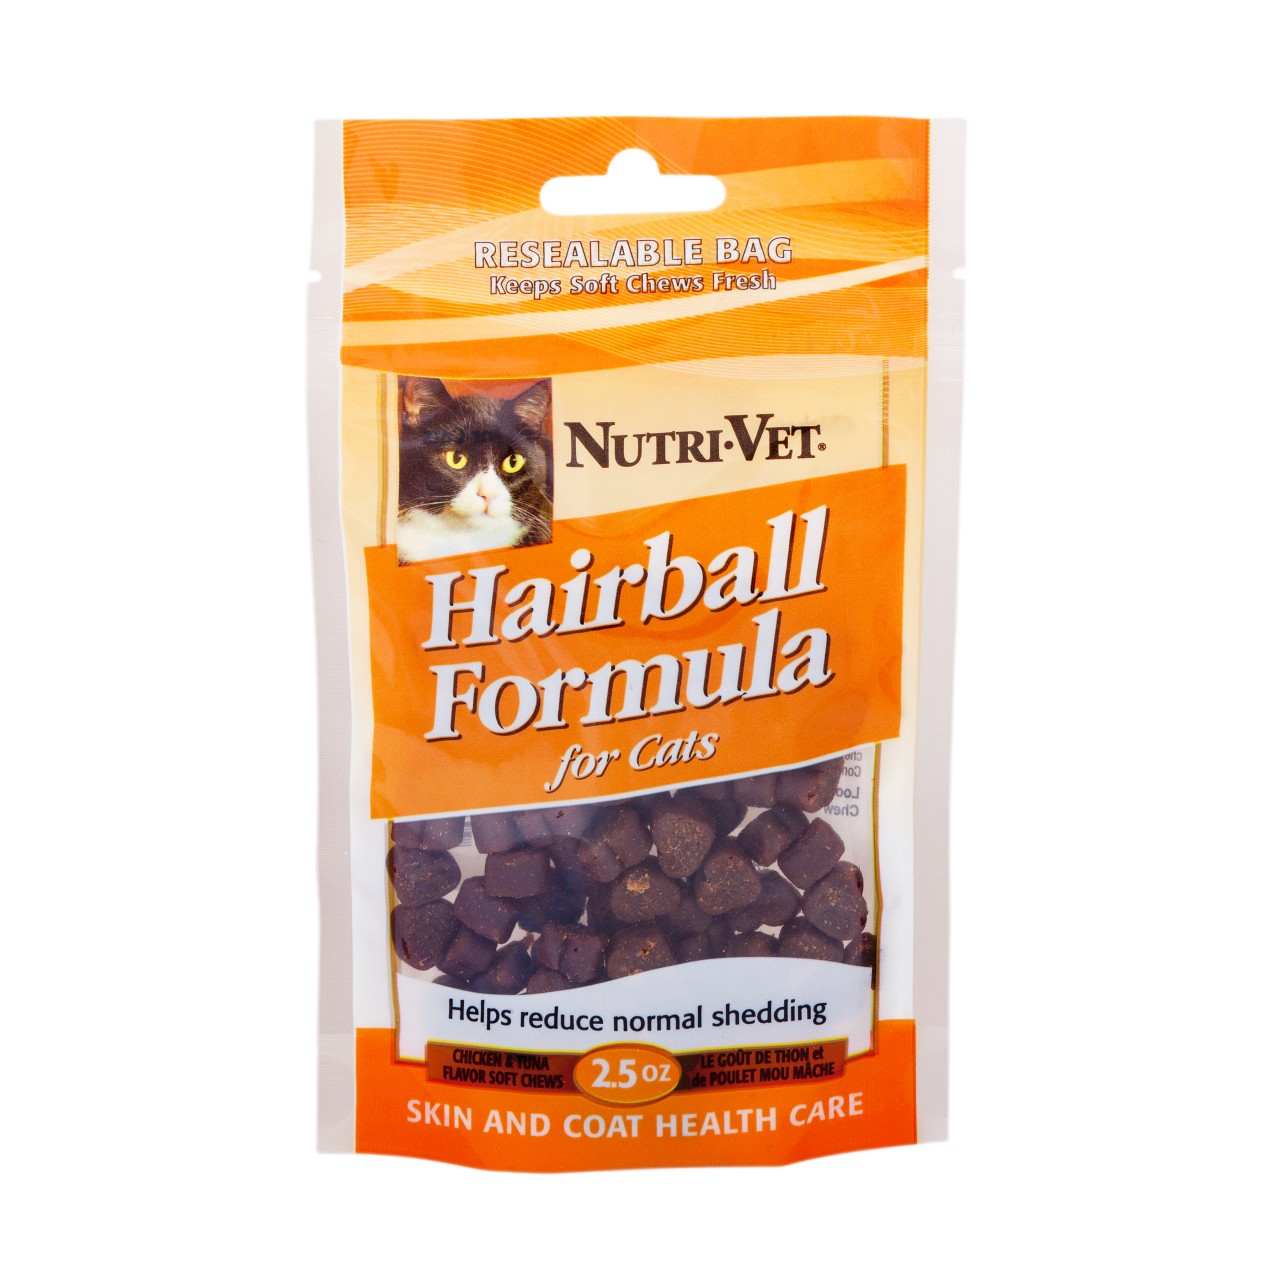 Nutri-Vet Hairball Formula Chicken and Tuna Flavor